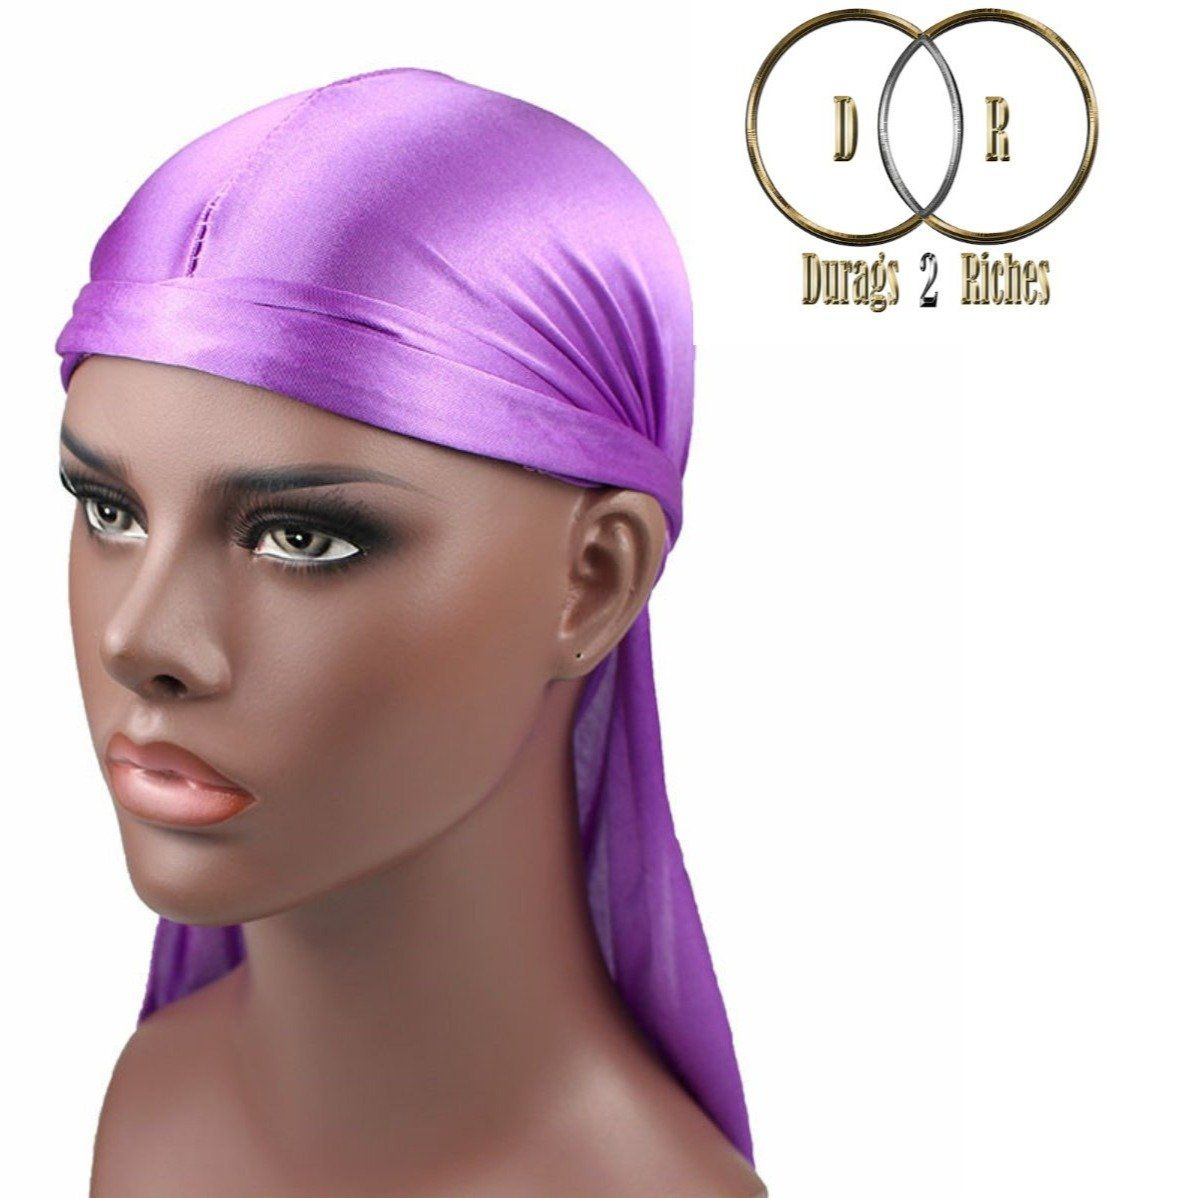 Pin On Durags 2 Riches